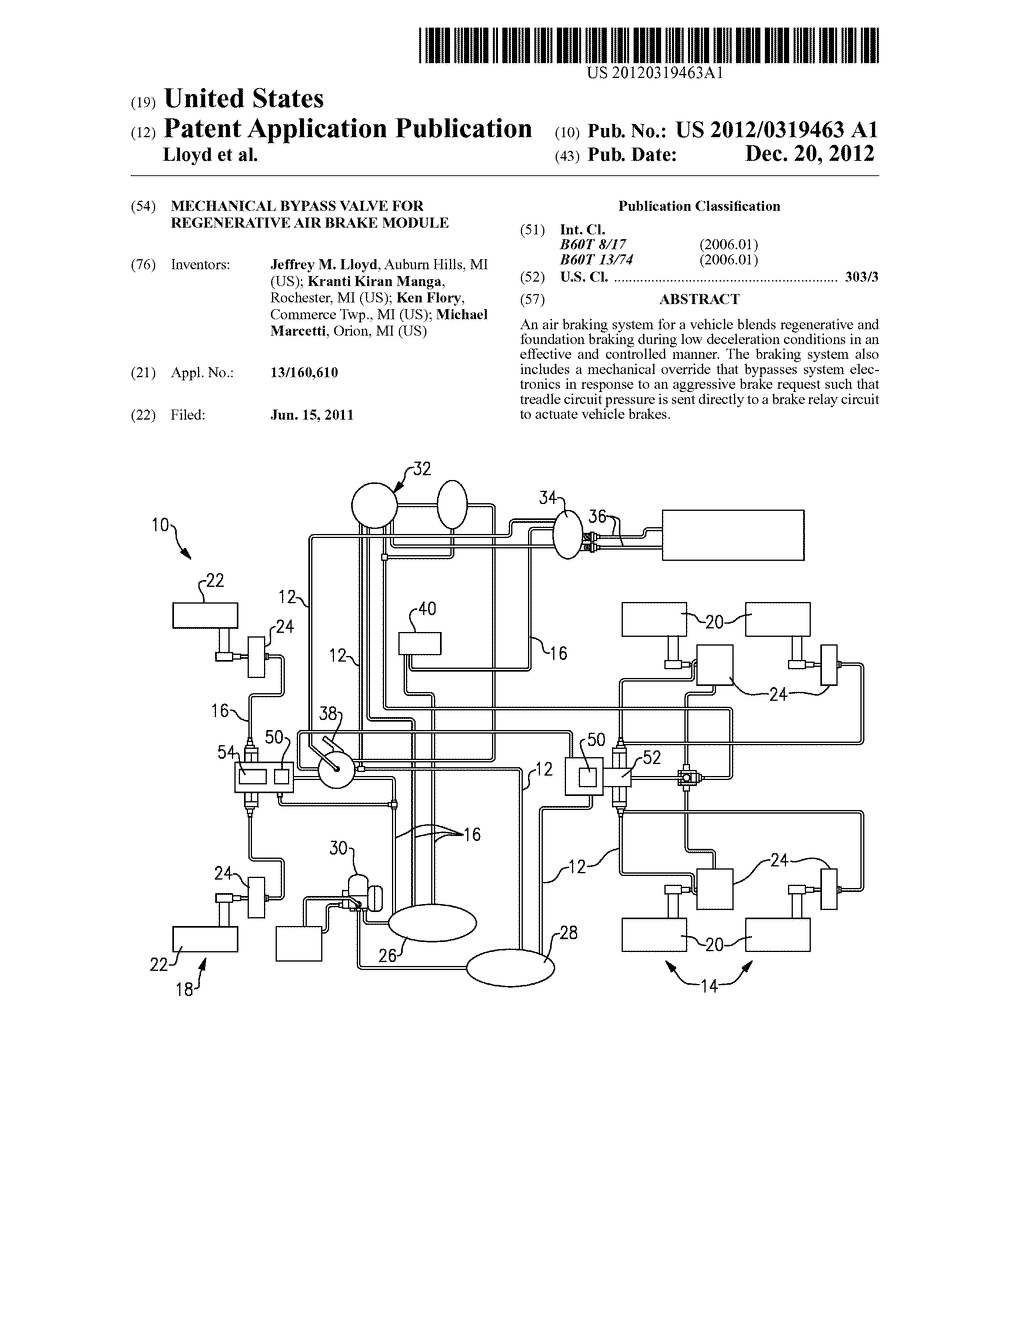 hight resolution of mechanical bypass valve for regenerative air brake module diagram schematic and image 01